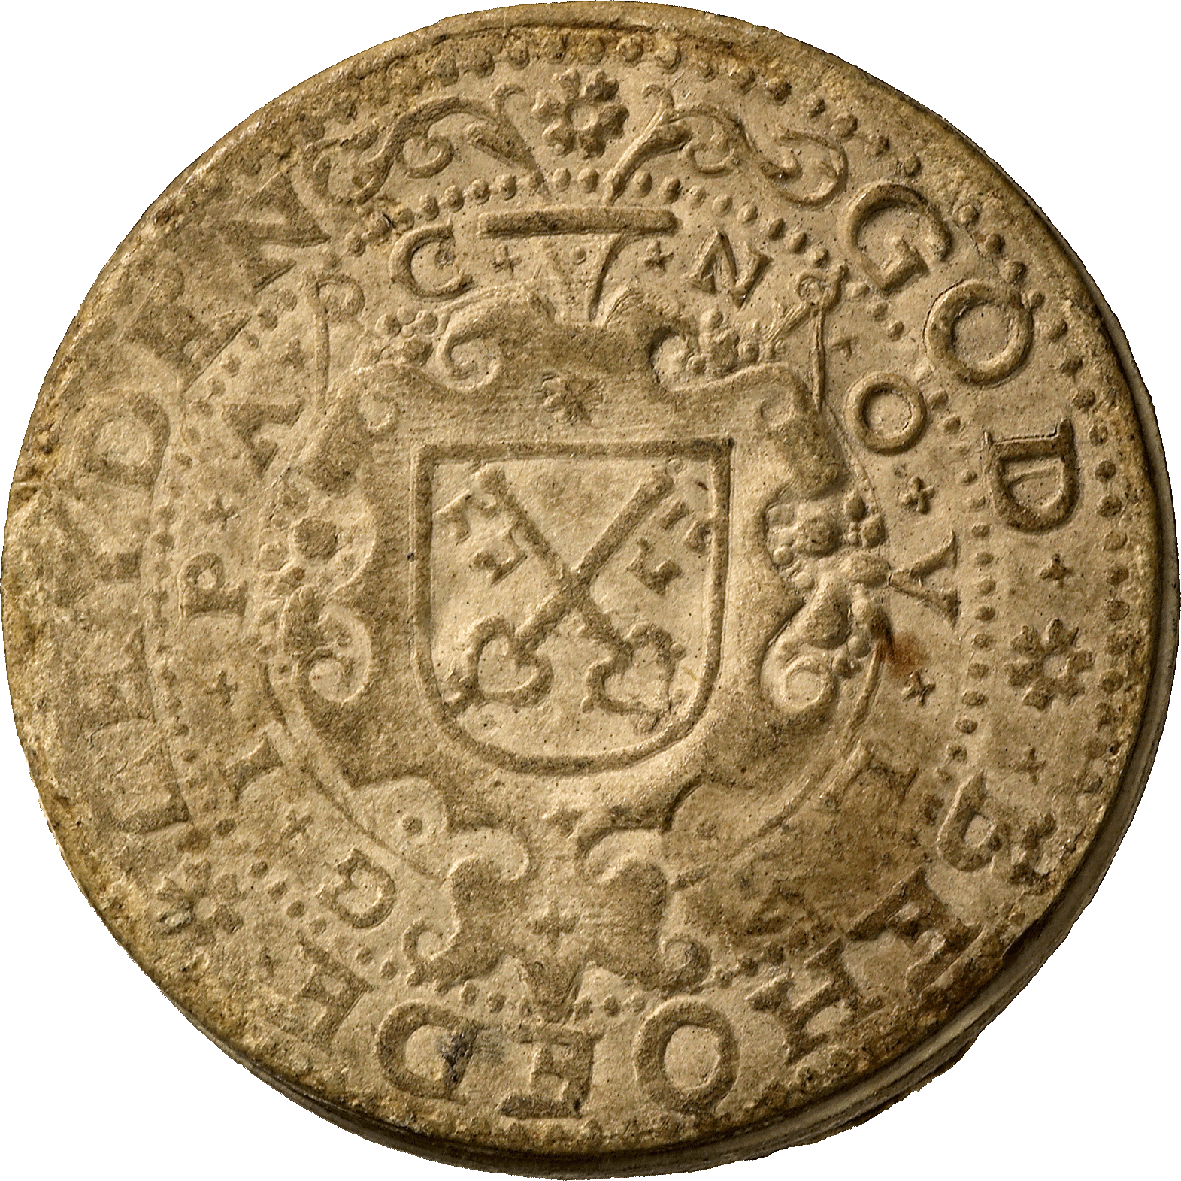 Netherlands, Leiden Besieged by the Spaniards, Guilder 1574 (reverse)